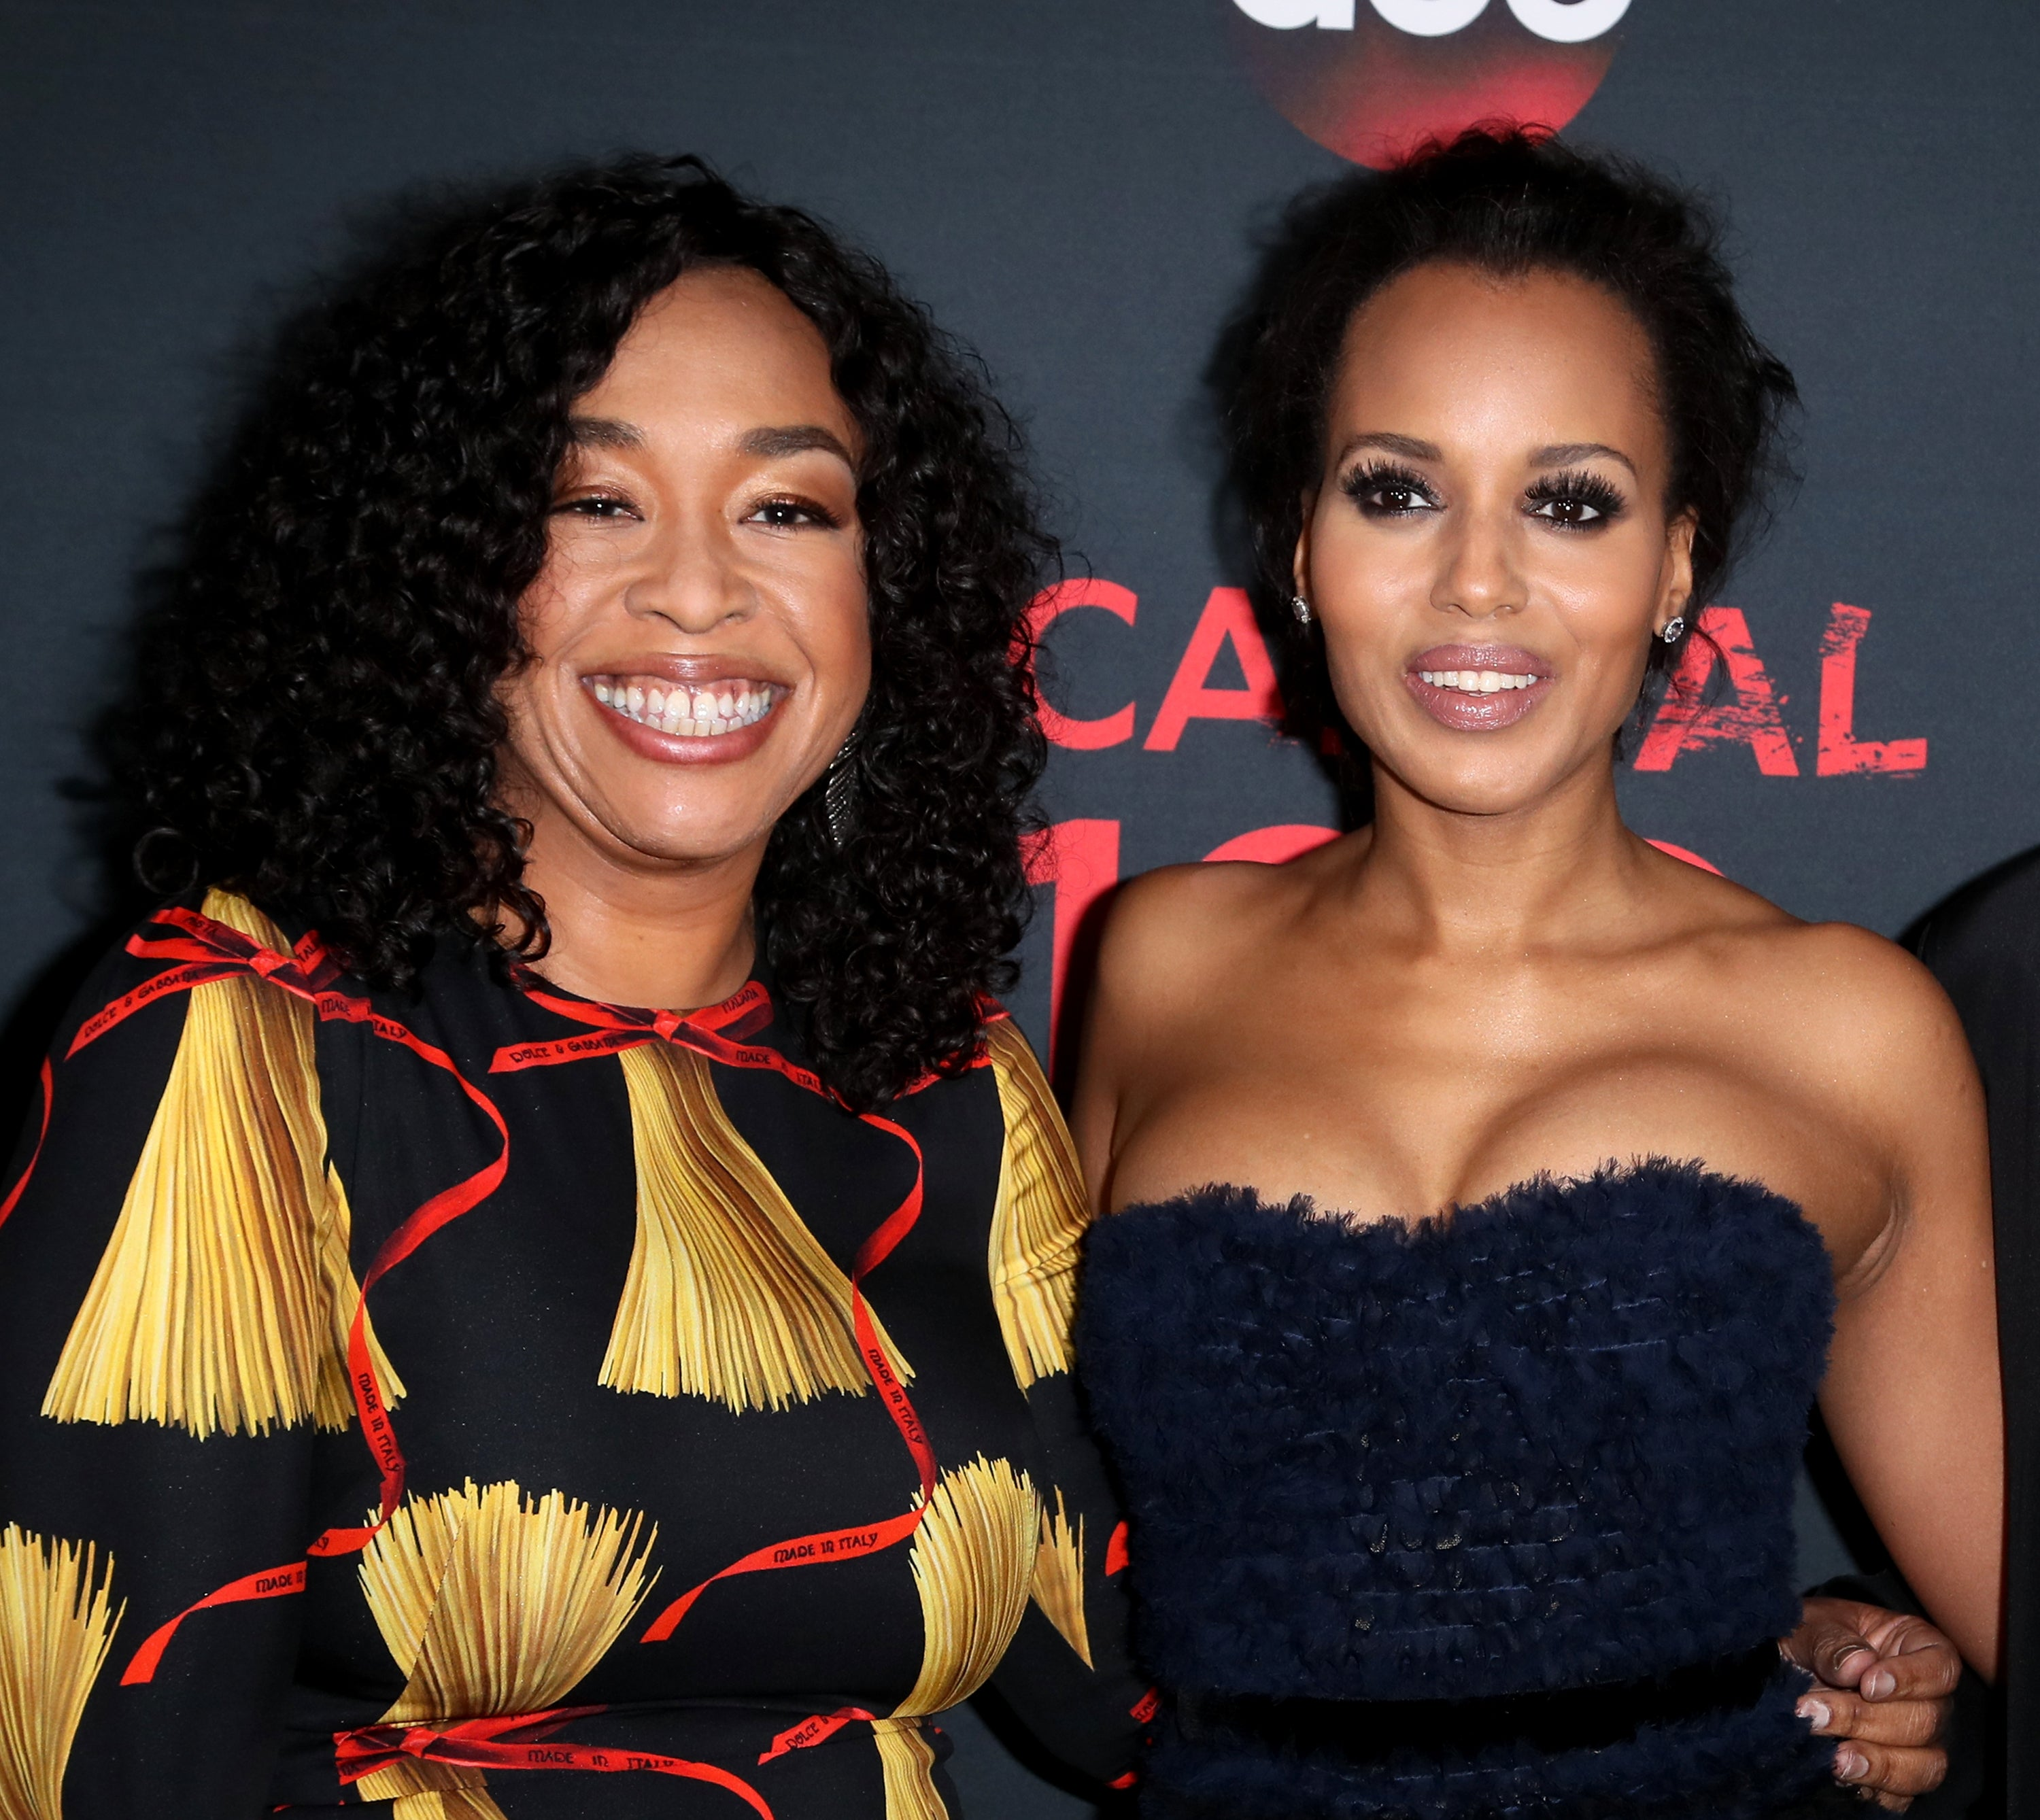 Shonda Rhimes, Gabrielle Union, and Jada Pinkett Smith Sign On To Produce Kerry Washington's New Broadway Play